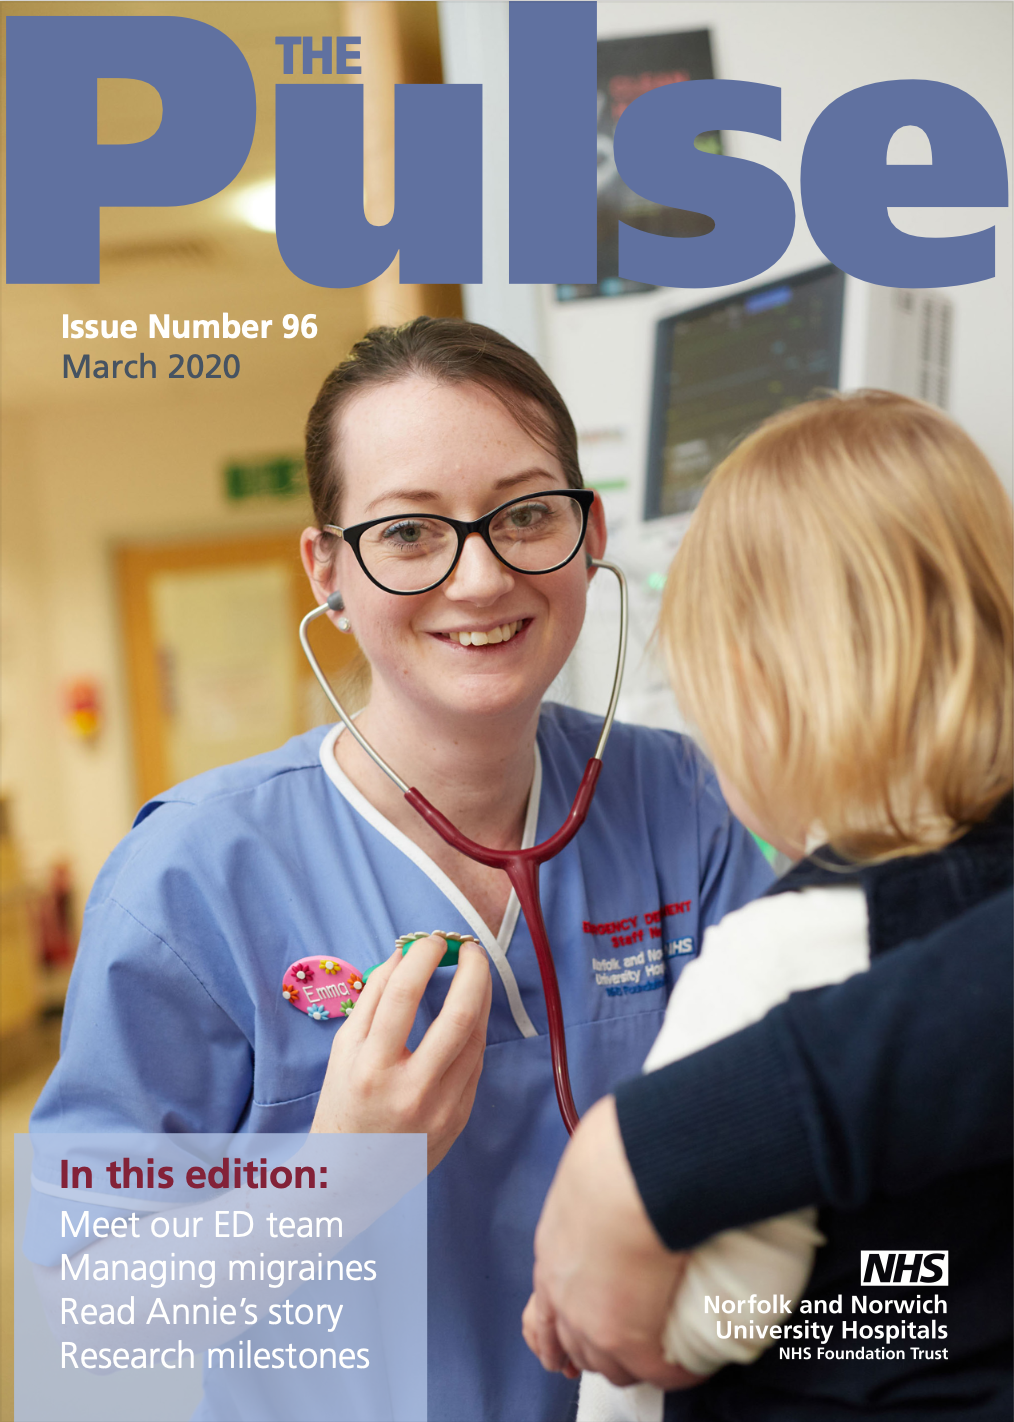 The Pulse March 2020 issue front cover